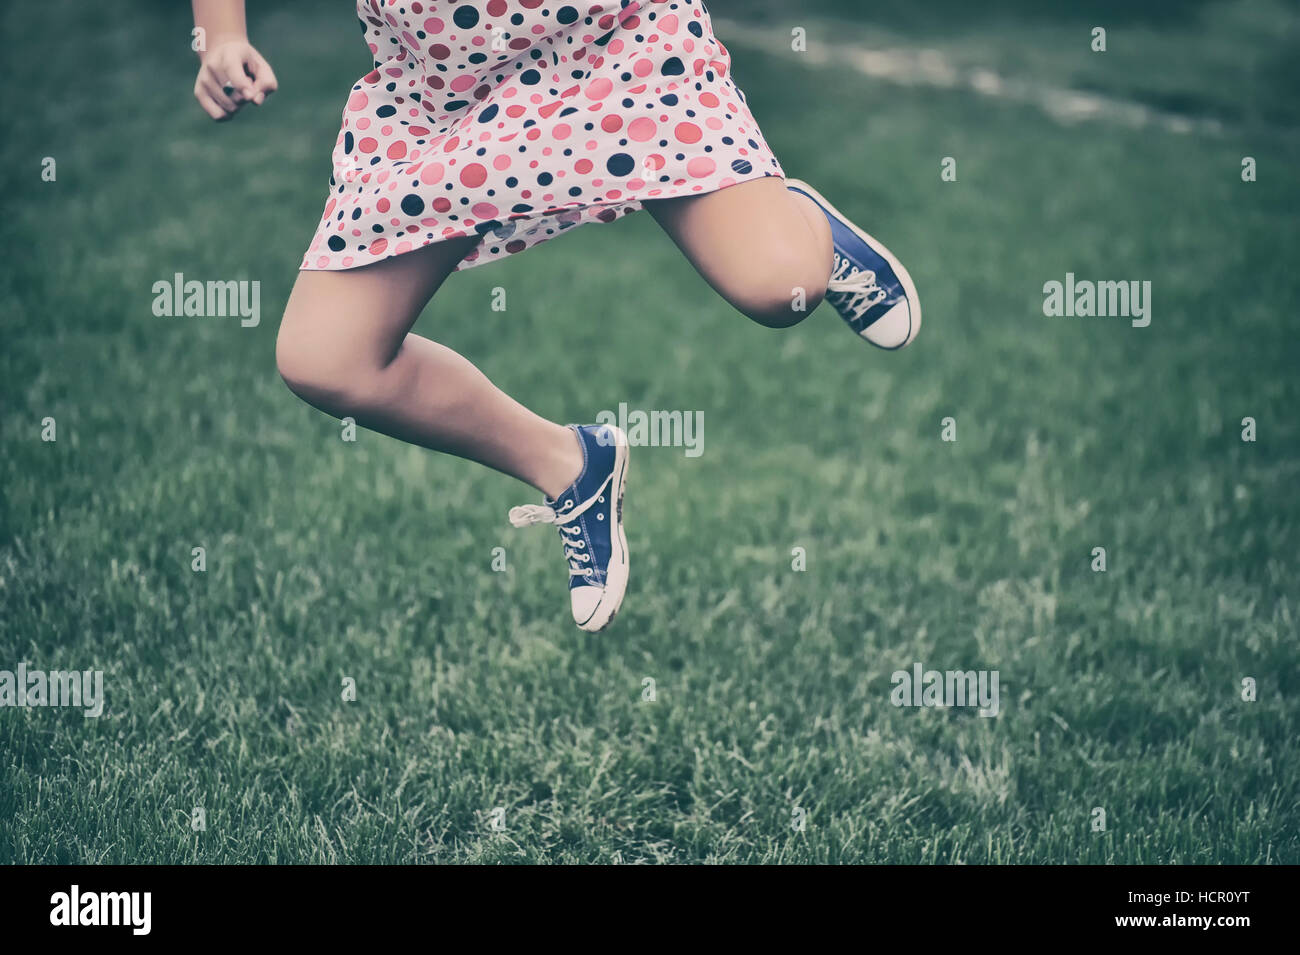 Girl running outdoors - Stock Image